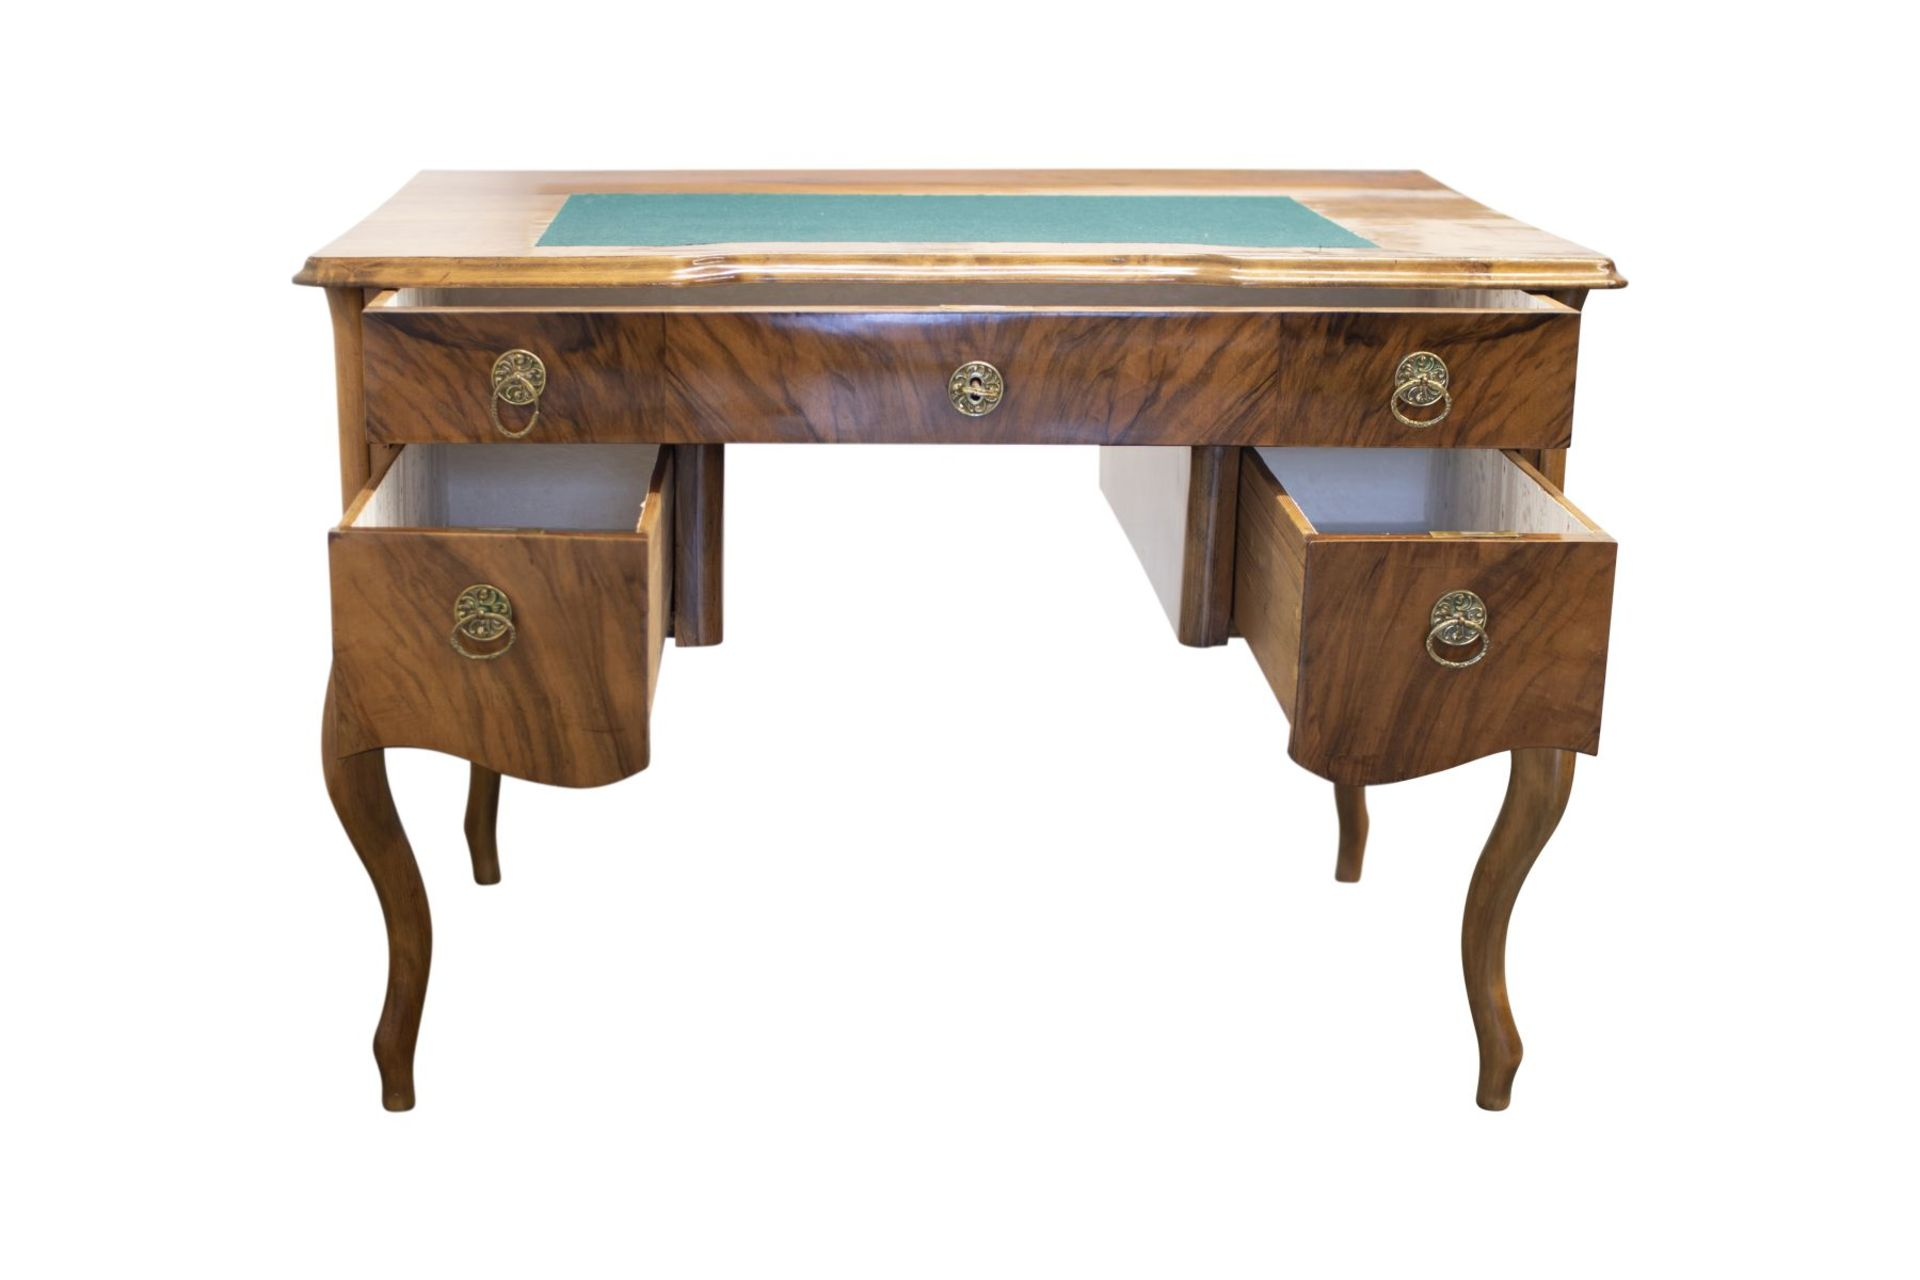 Biedermeier style desk, second half of the 19th century - Image 2 of 4